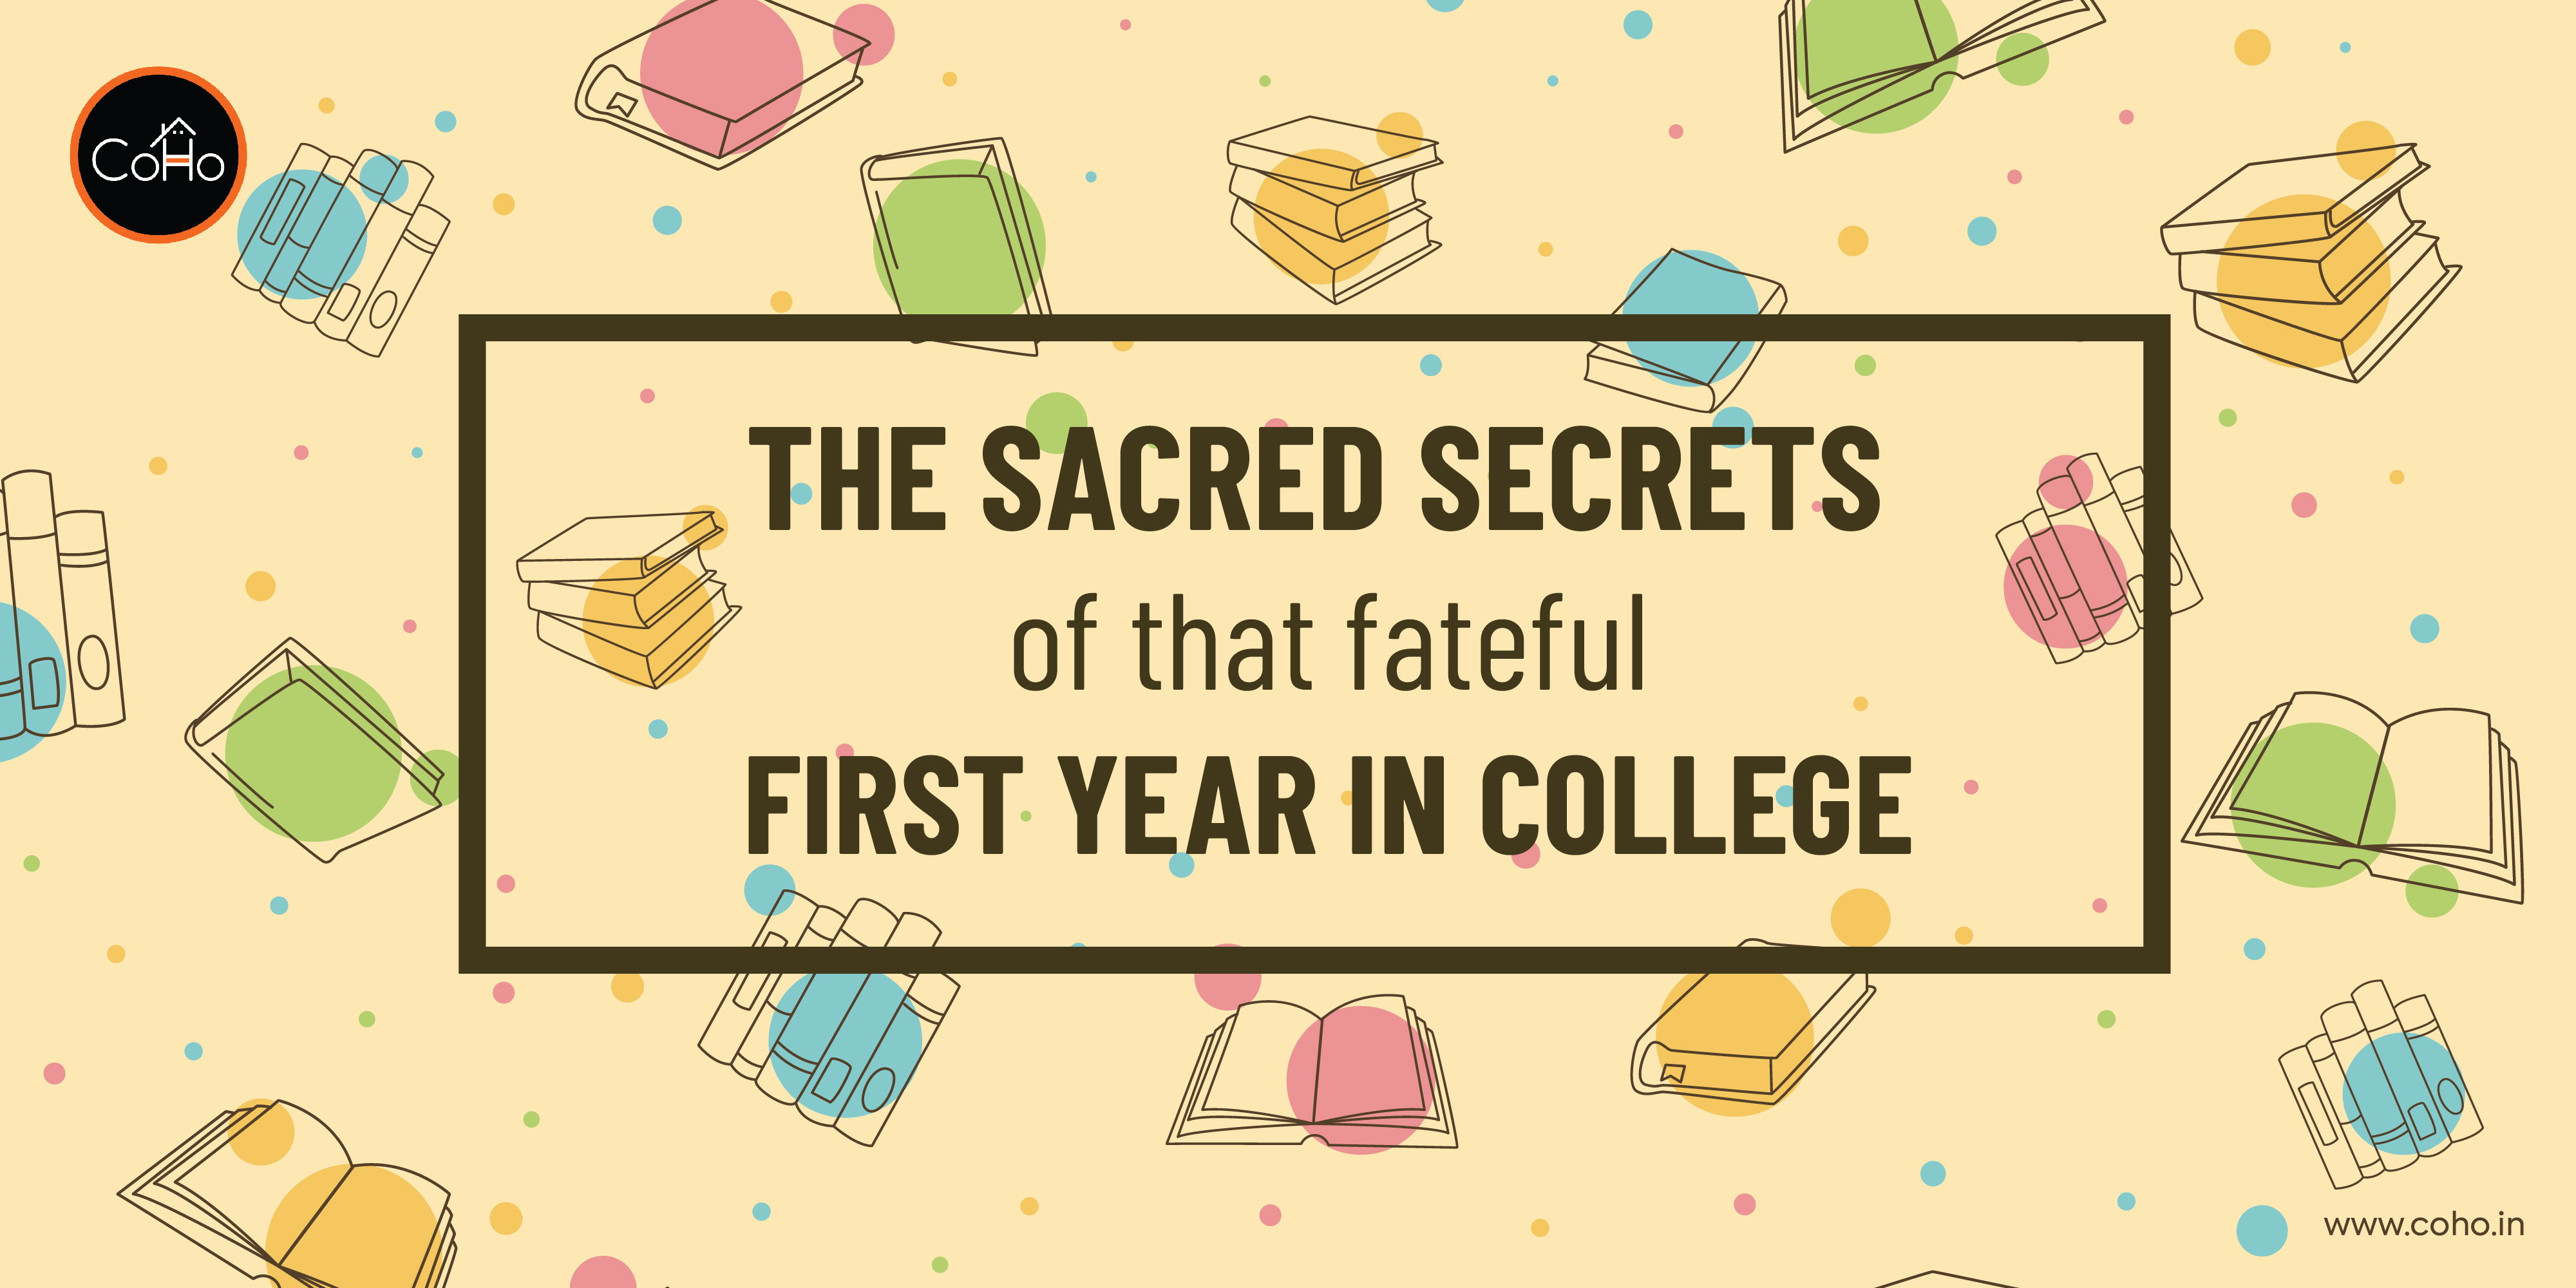 The sacred secrets of that fateful first year in college